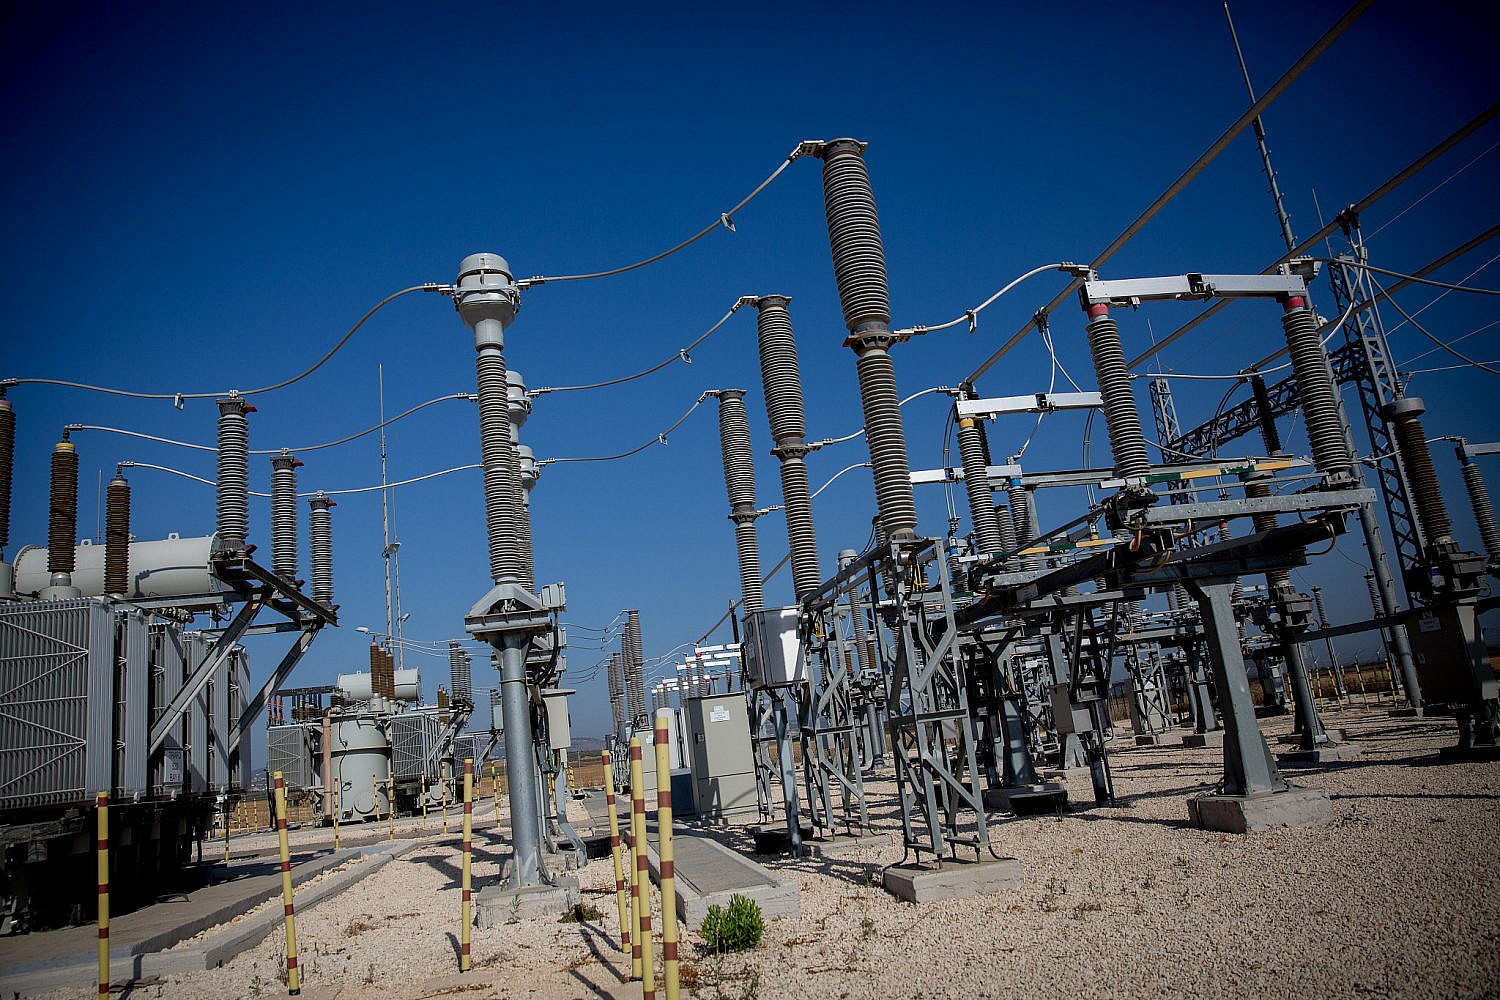 The opening of a first completely Palestinian-owned and managed electricity substation, outside of Jenin, West Bank. The station was built by Israel Electric Corporation, but owned by the Palestinian Electric Authority (PEA) and the PA. July 10, 2017. (Miriam Alster/Flash90)